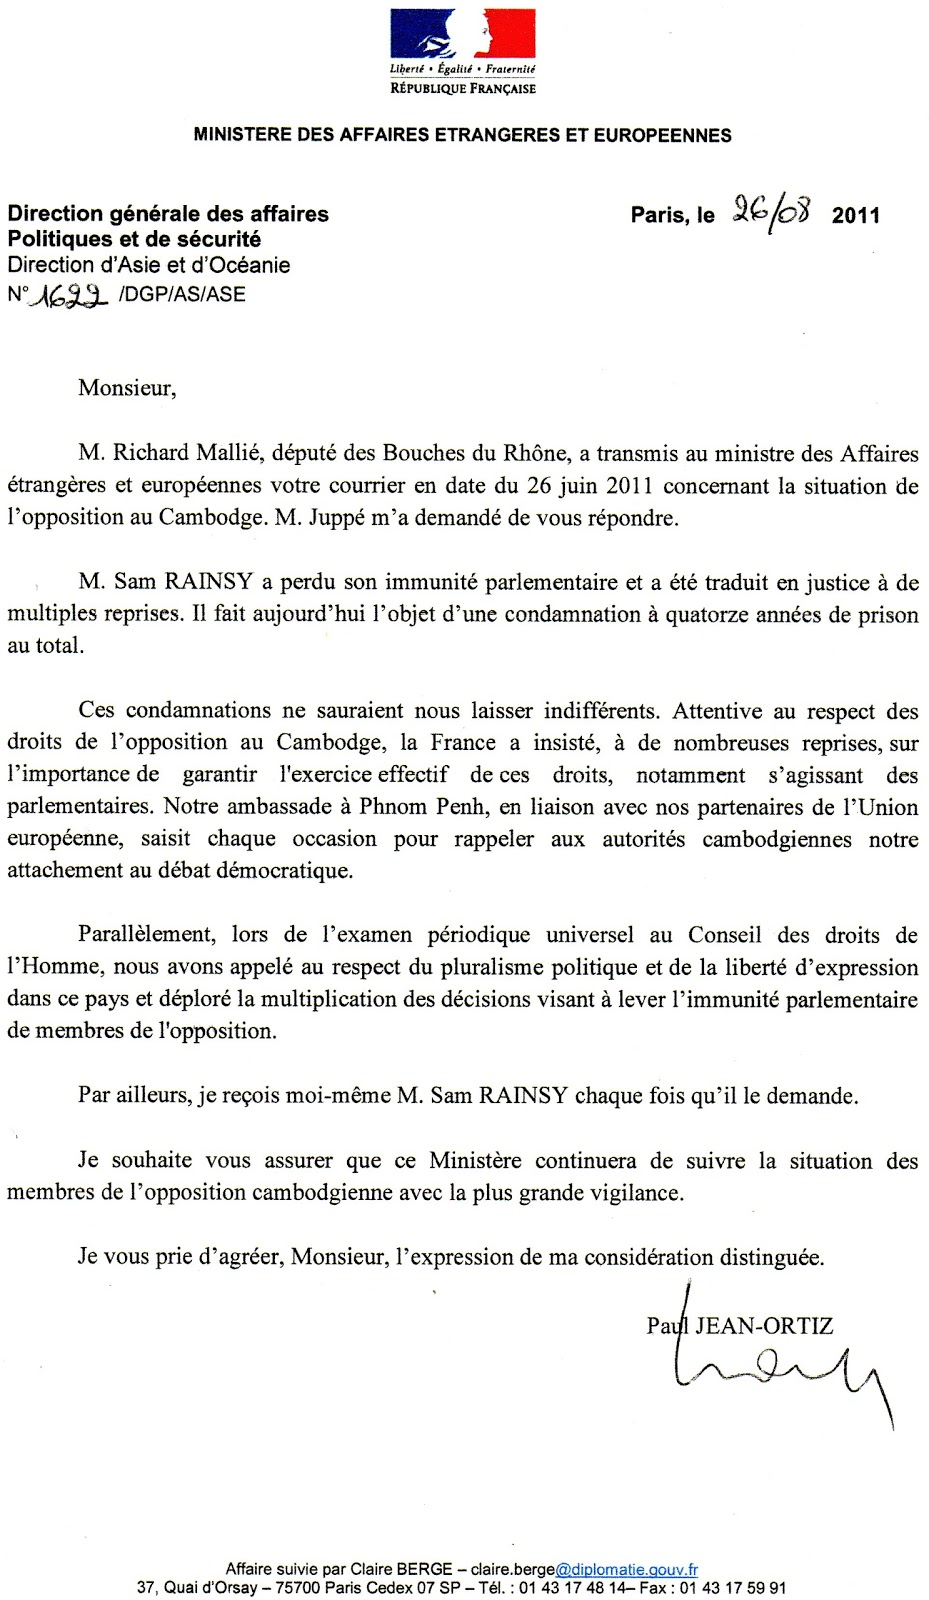 Ki media letter from the french ministry of foreign and european letter from the french ministry of foreign and european affairs concerning opposition leader sam rainsys case spiritdancerdesigns Image collections